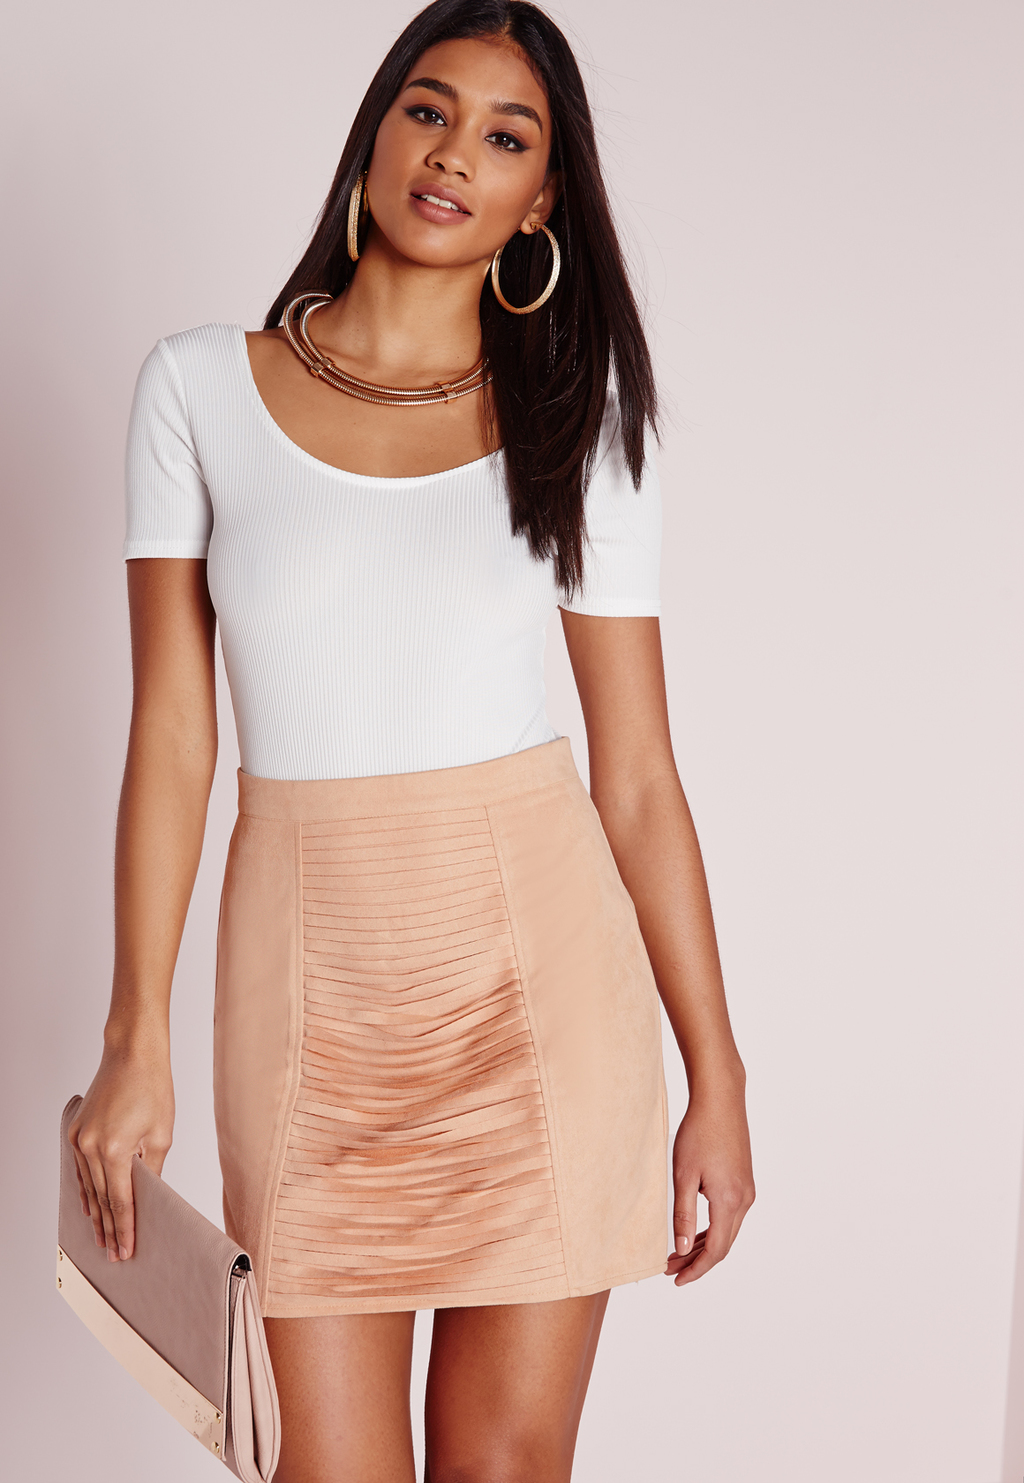 Faux Suede Slash Front Mini Skirt Nude, Peach - length: mini; pattern: plain; fit: tailored/fitted; waist: high rise; predominant colour: nude; occasions: evening; style: mini skirt; fibres: polyester/polyamide - mix; pattern type: fabric; texture group: suede; season: s/s 2016; wardrobe: event; embellishment location: hip